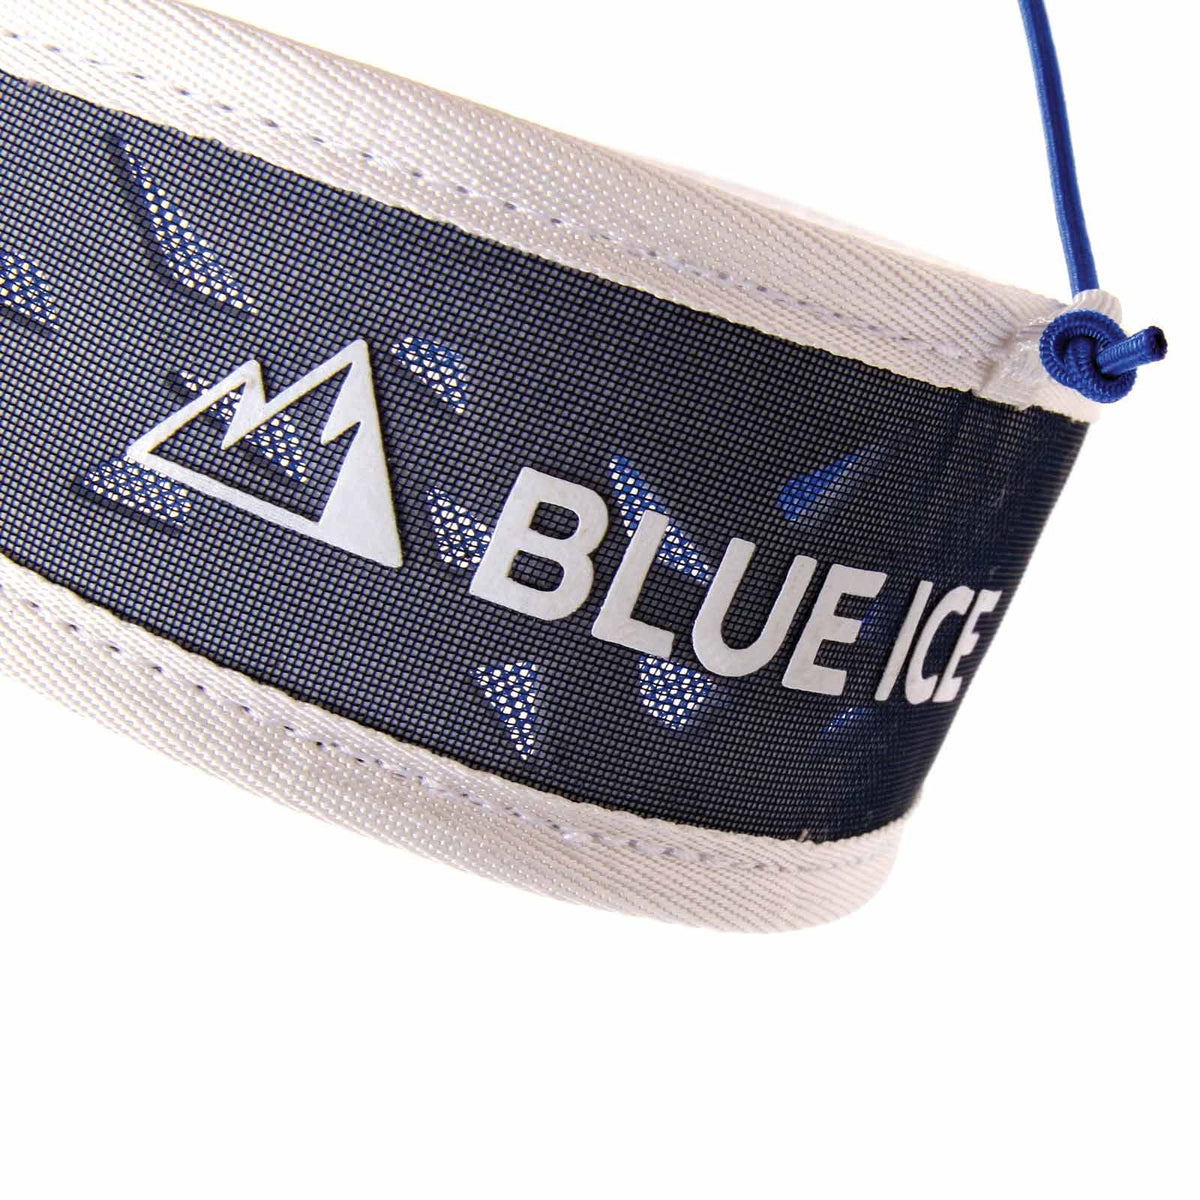 Blue Ice Addax Harness, close up of the logo